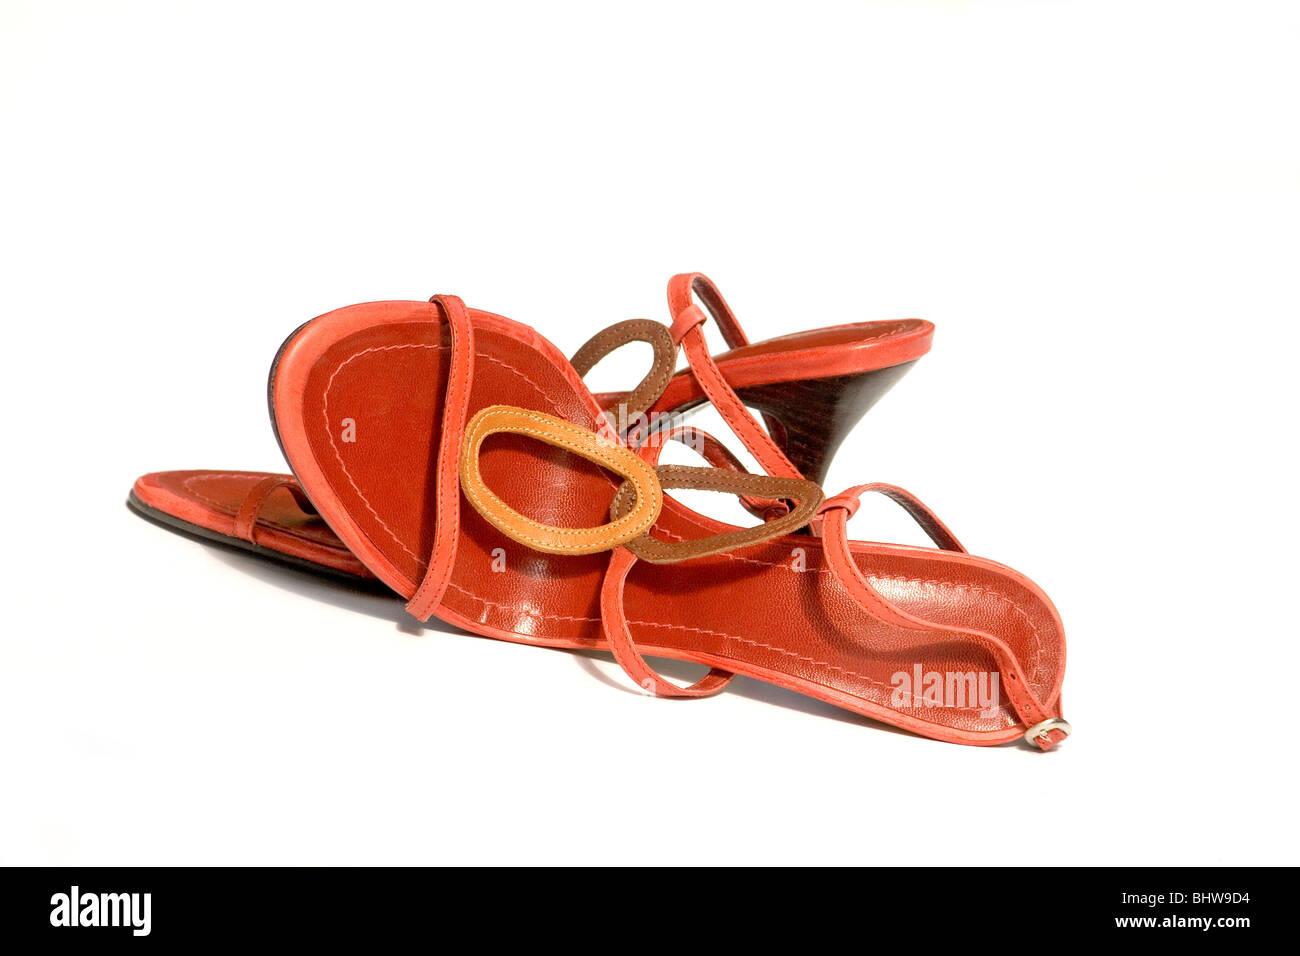 High heels sandals close-up - Stock Image